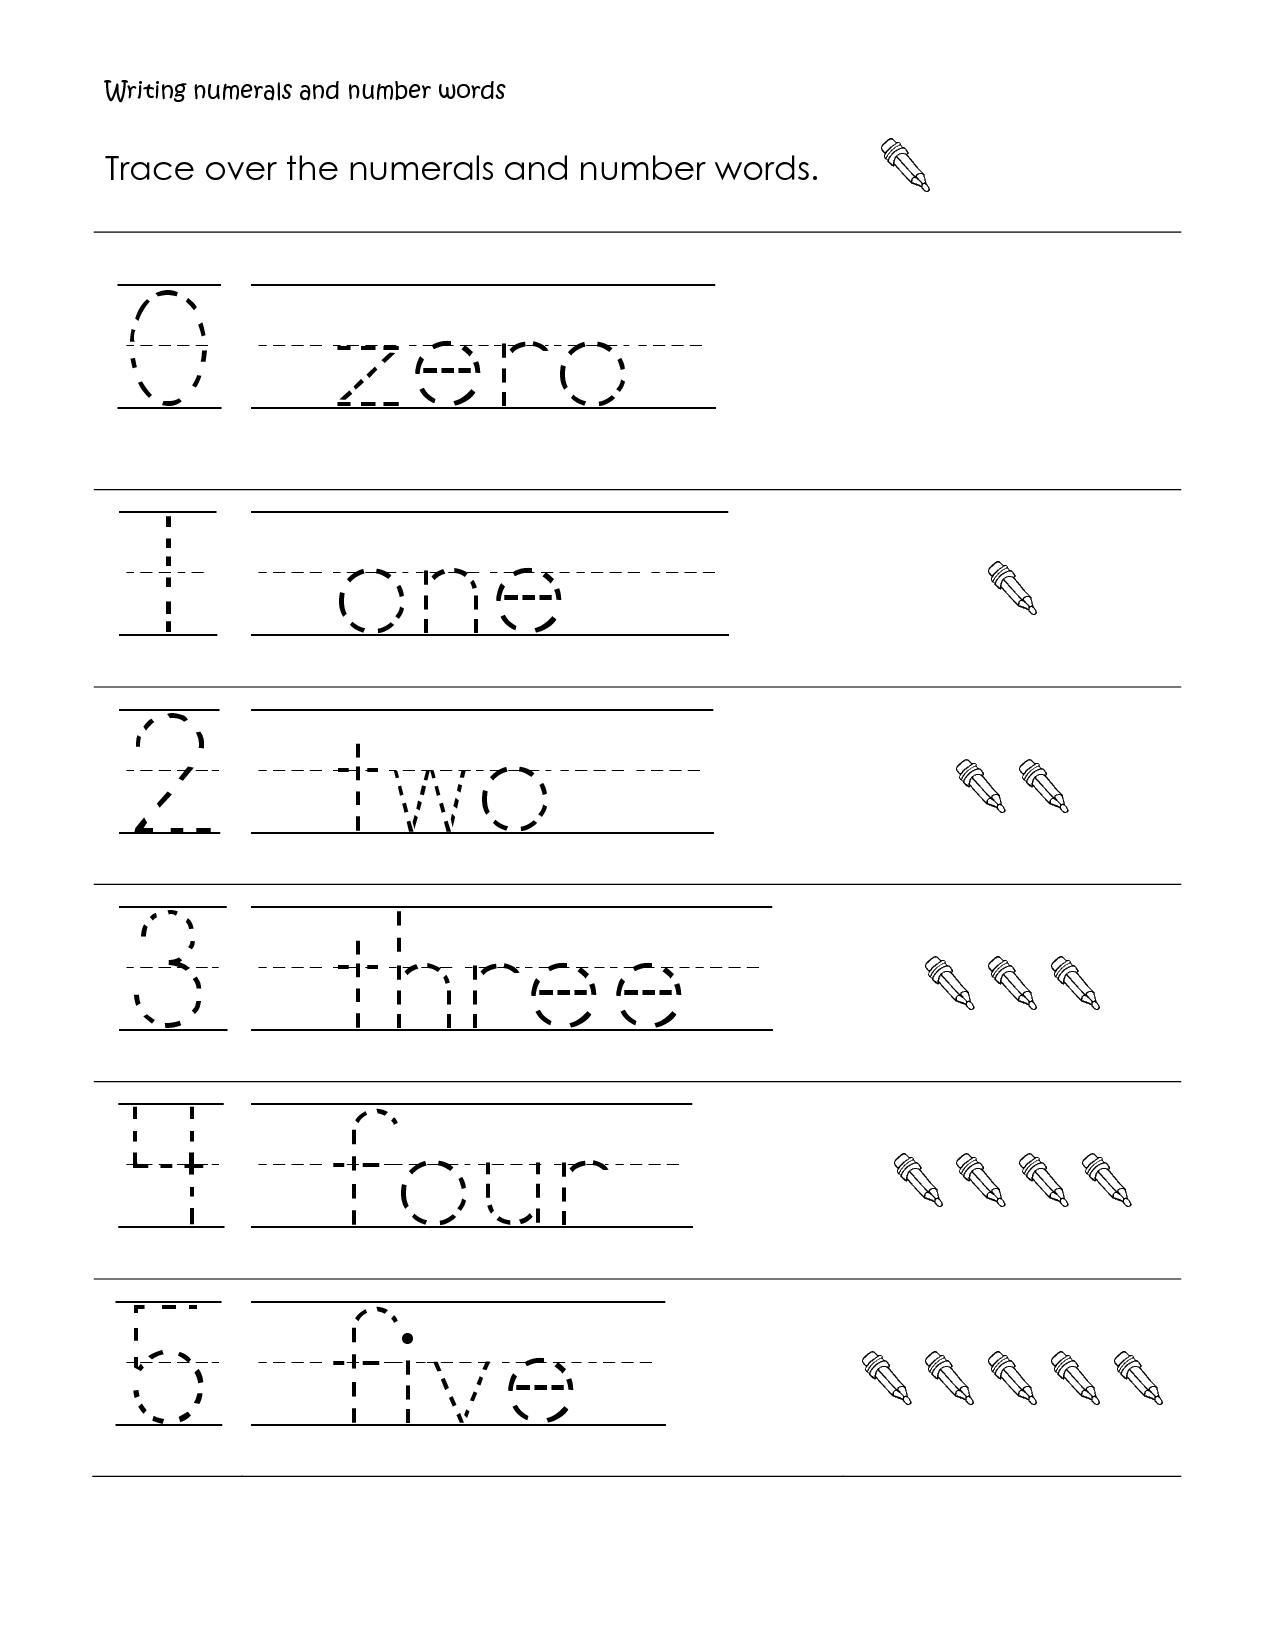 Word Tracing Worksheets For Kindergarten In 2020 (With